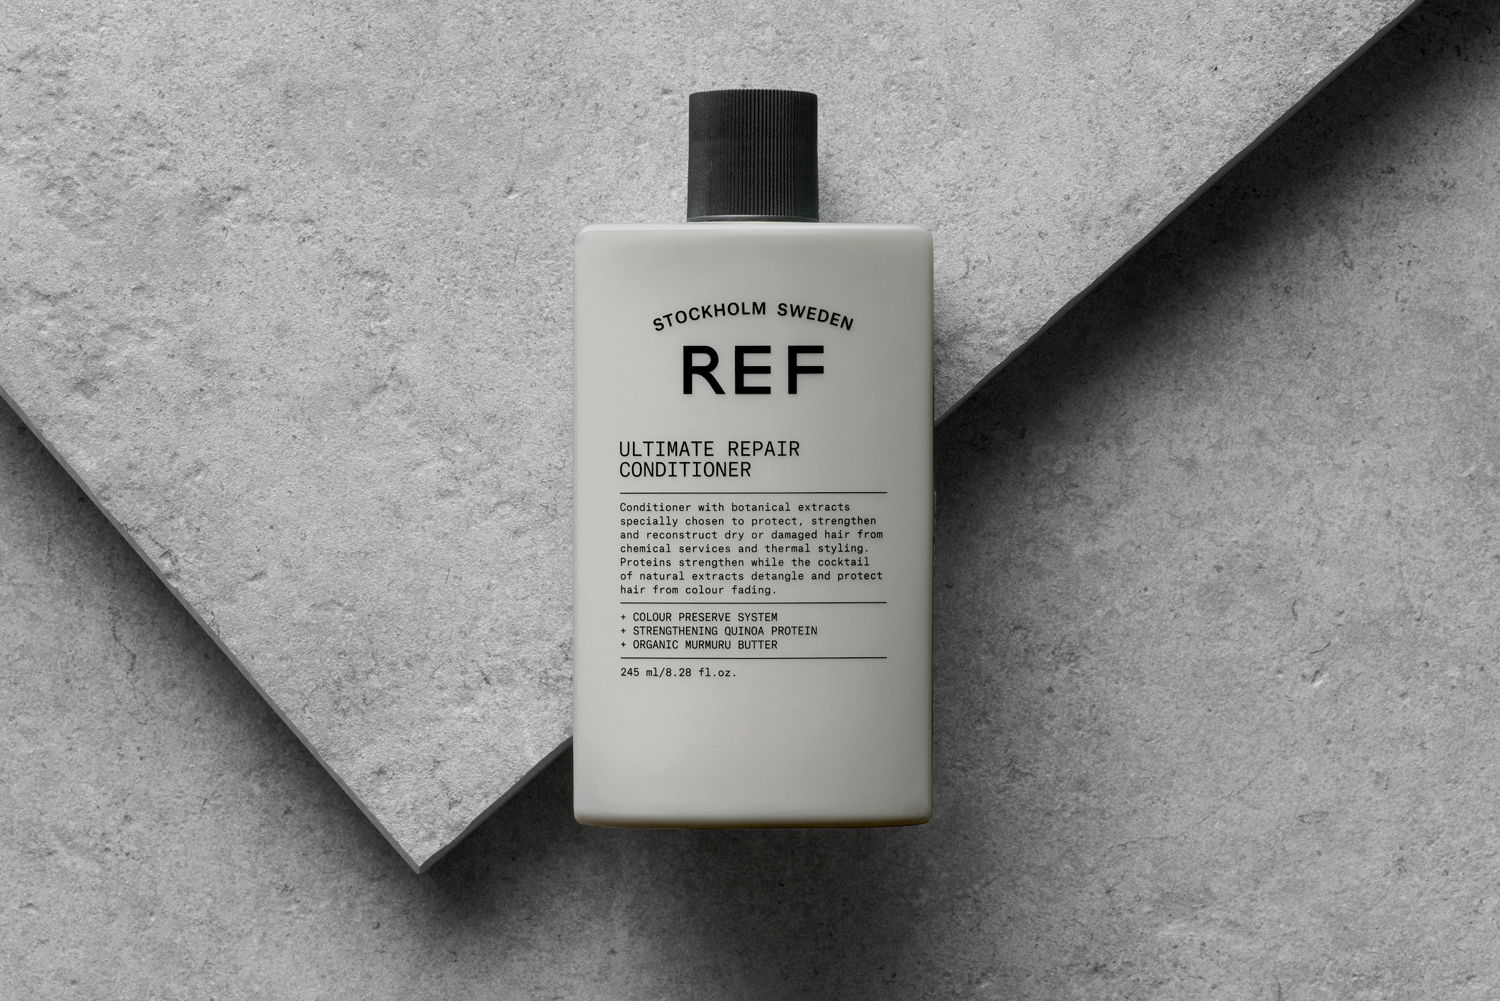 Visual identity and package design by Scandinavian studio Kurppa Hosk for Swedish hair care brand REF